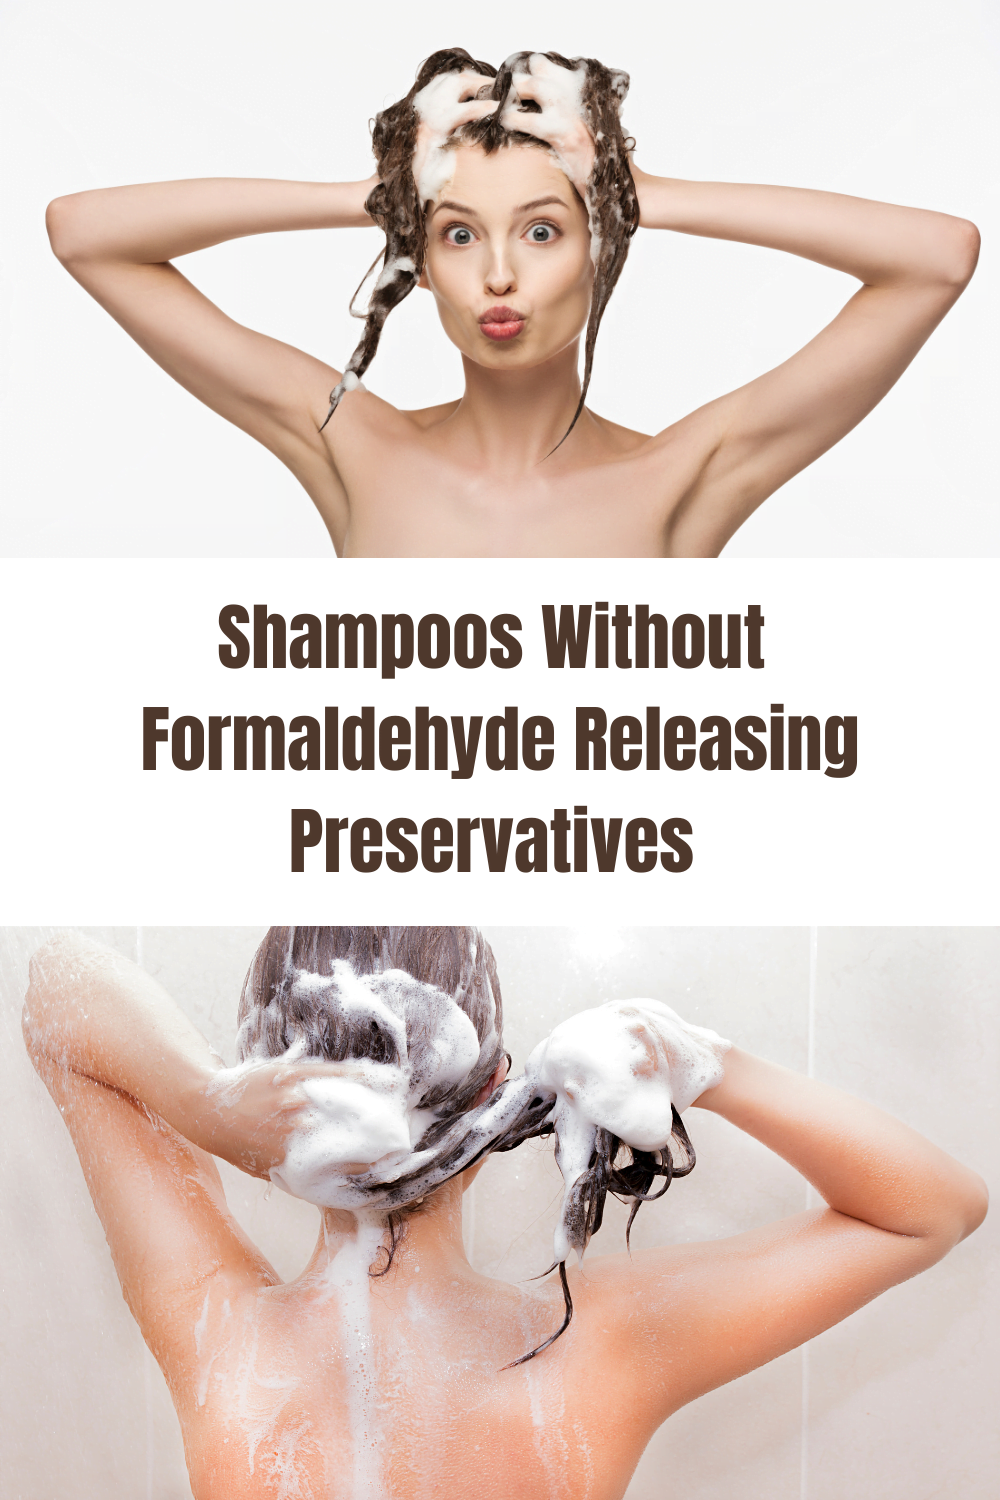 Shampoos Without DMDM Hydantoin & Other Formaldehyde Releasing Preservatives 2021 2